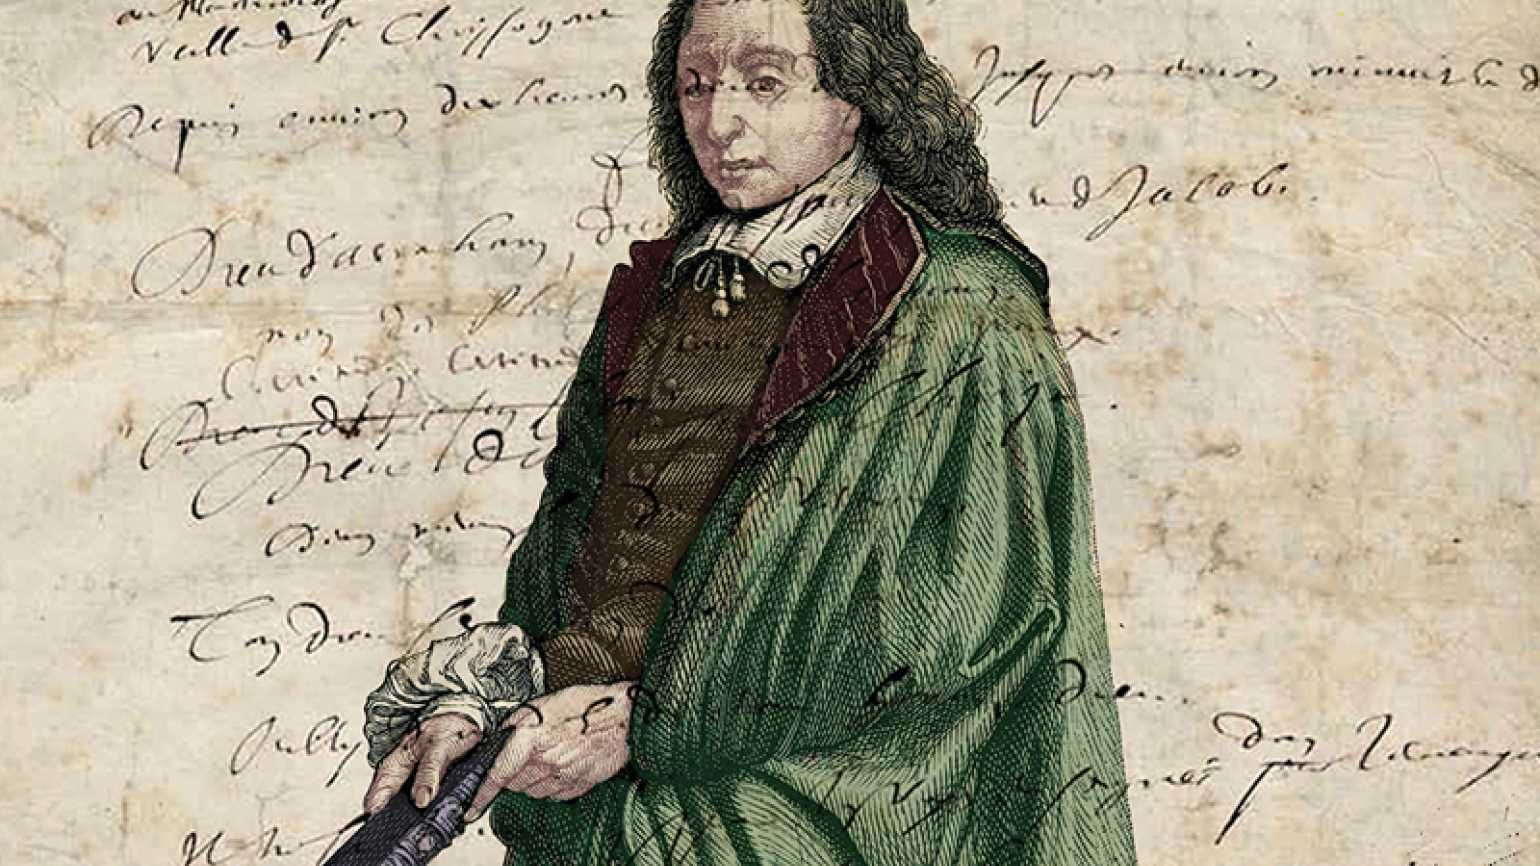 An artist's rendering of the 17th-century mathematician and man of faith, Pascal